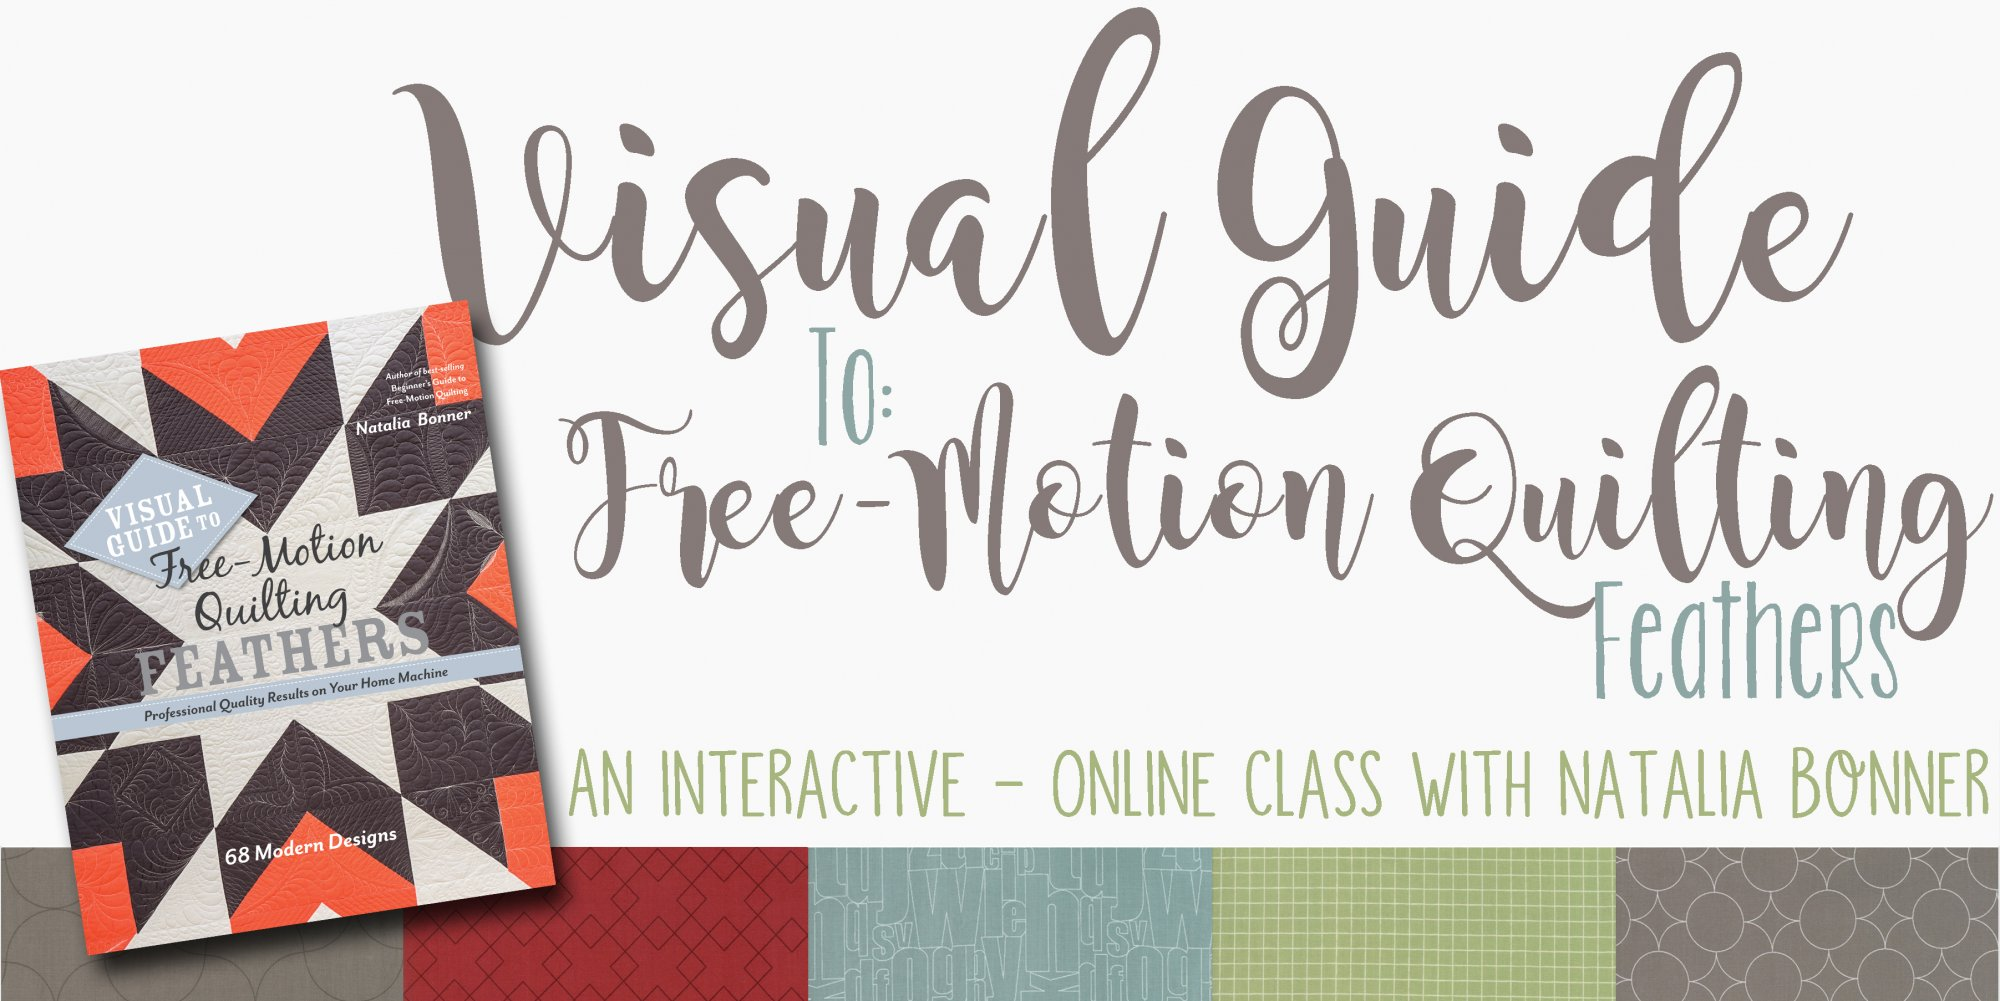 Visual Guide to Free-Motion Quilting Feathers - Interactive Class with Natalia Bonner - Spring 2019